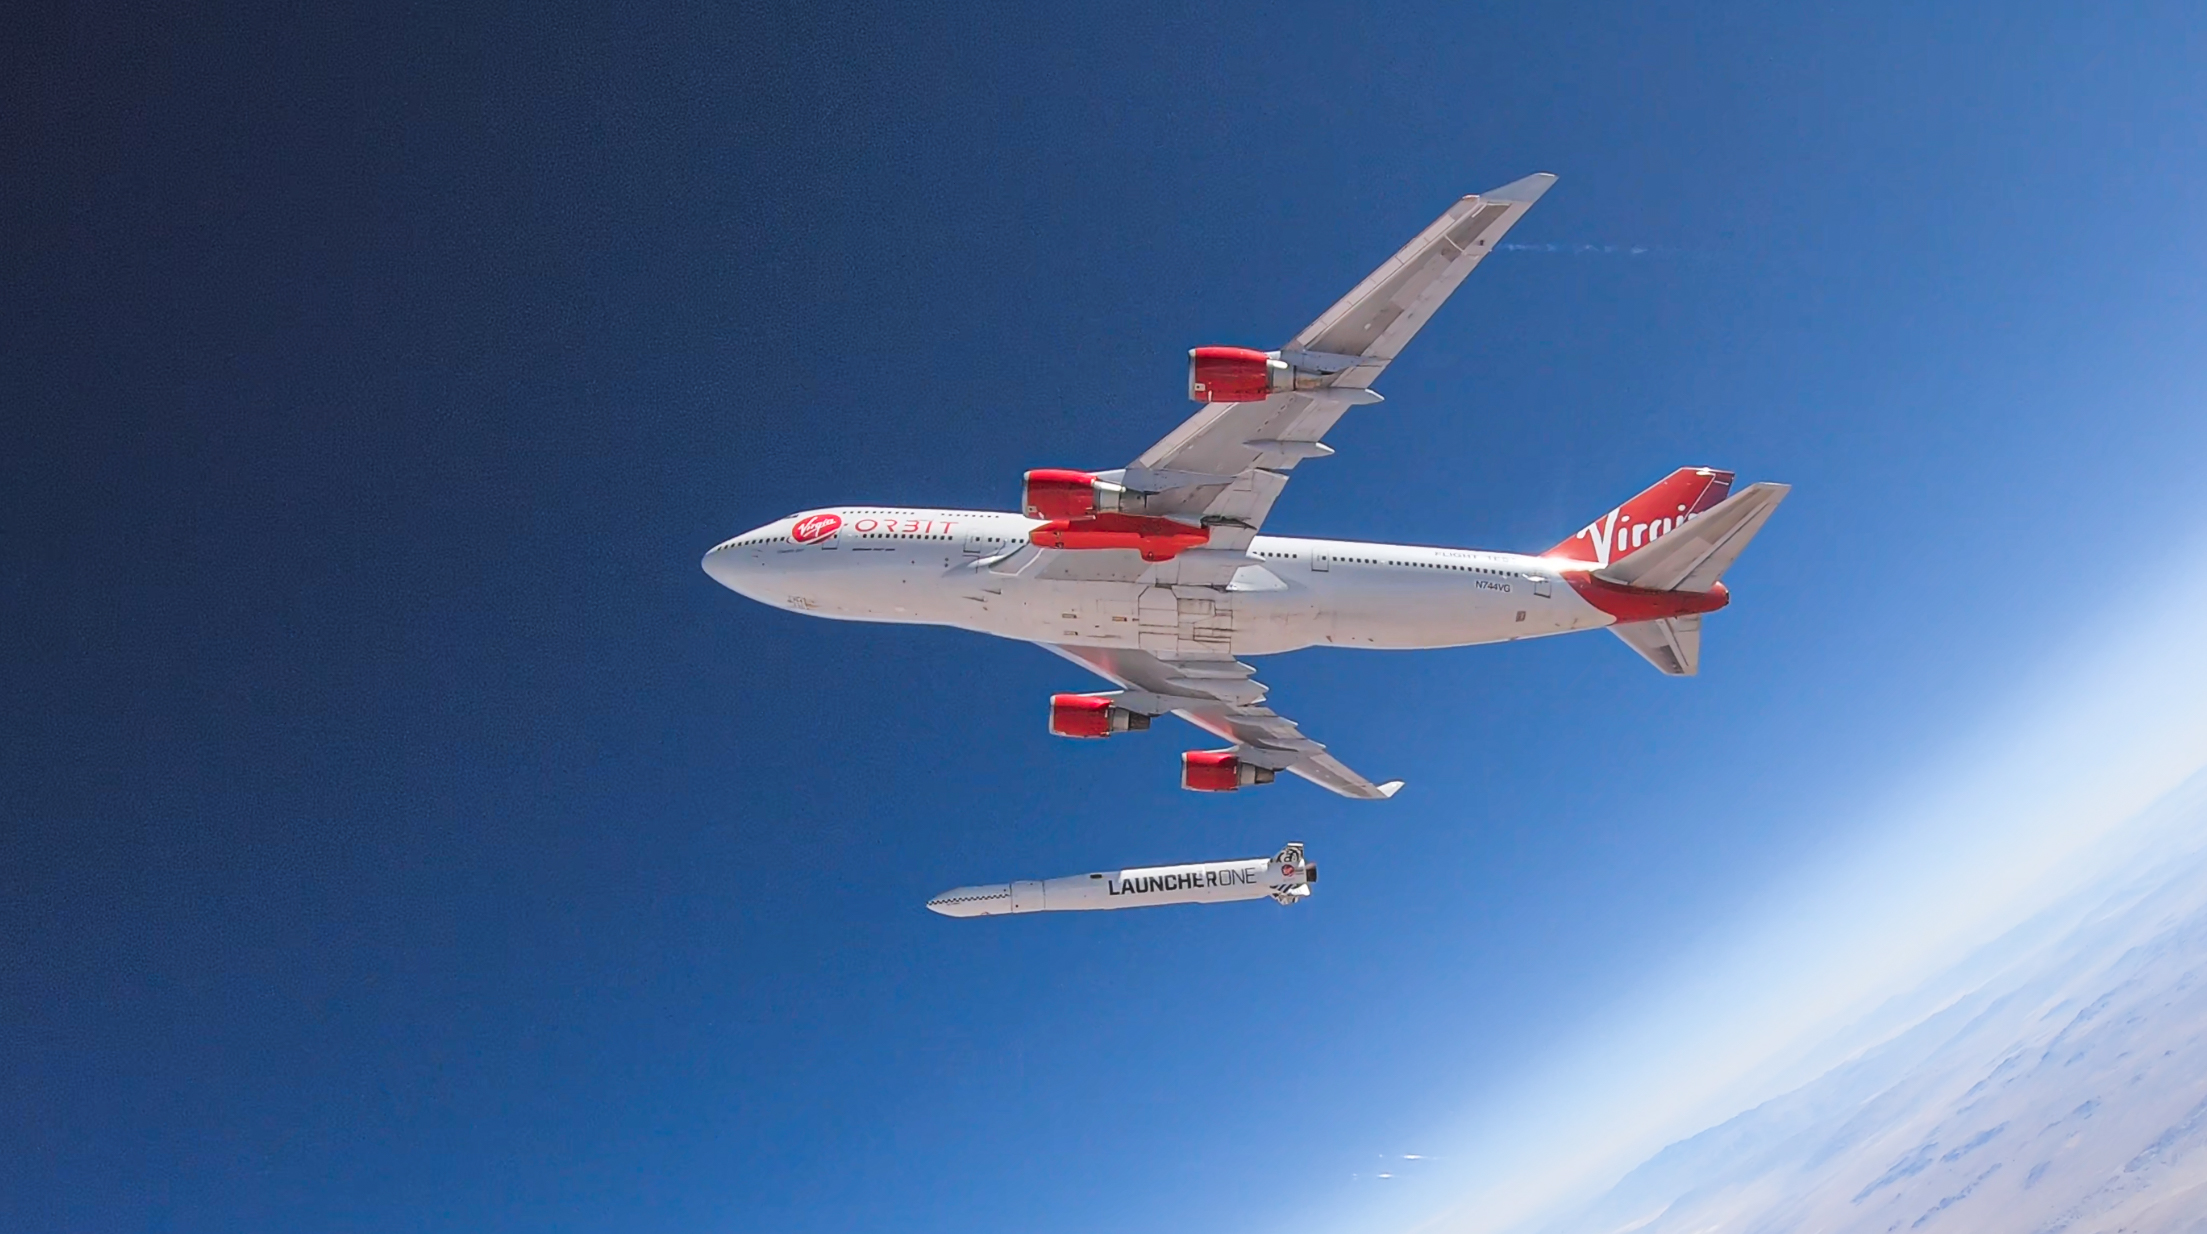 "A tiny satellite built by student researchers at the University of Louisiana at Lafayette was launched into space Sunday to measure radiation levels as it orbits Earth. ""The CubeSat"" left the Mojave Air and Space Port in California inside a Virgin Orbit LauncherOne rocket attached beneath a wing of a customized Boeing 747. Photo credit: Virgin Orbit"